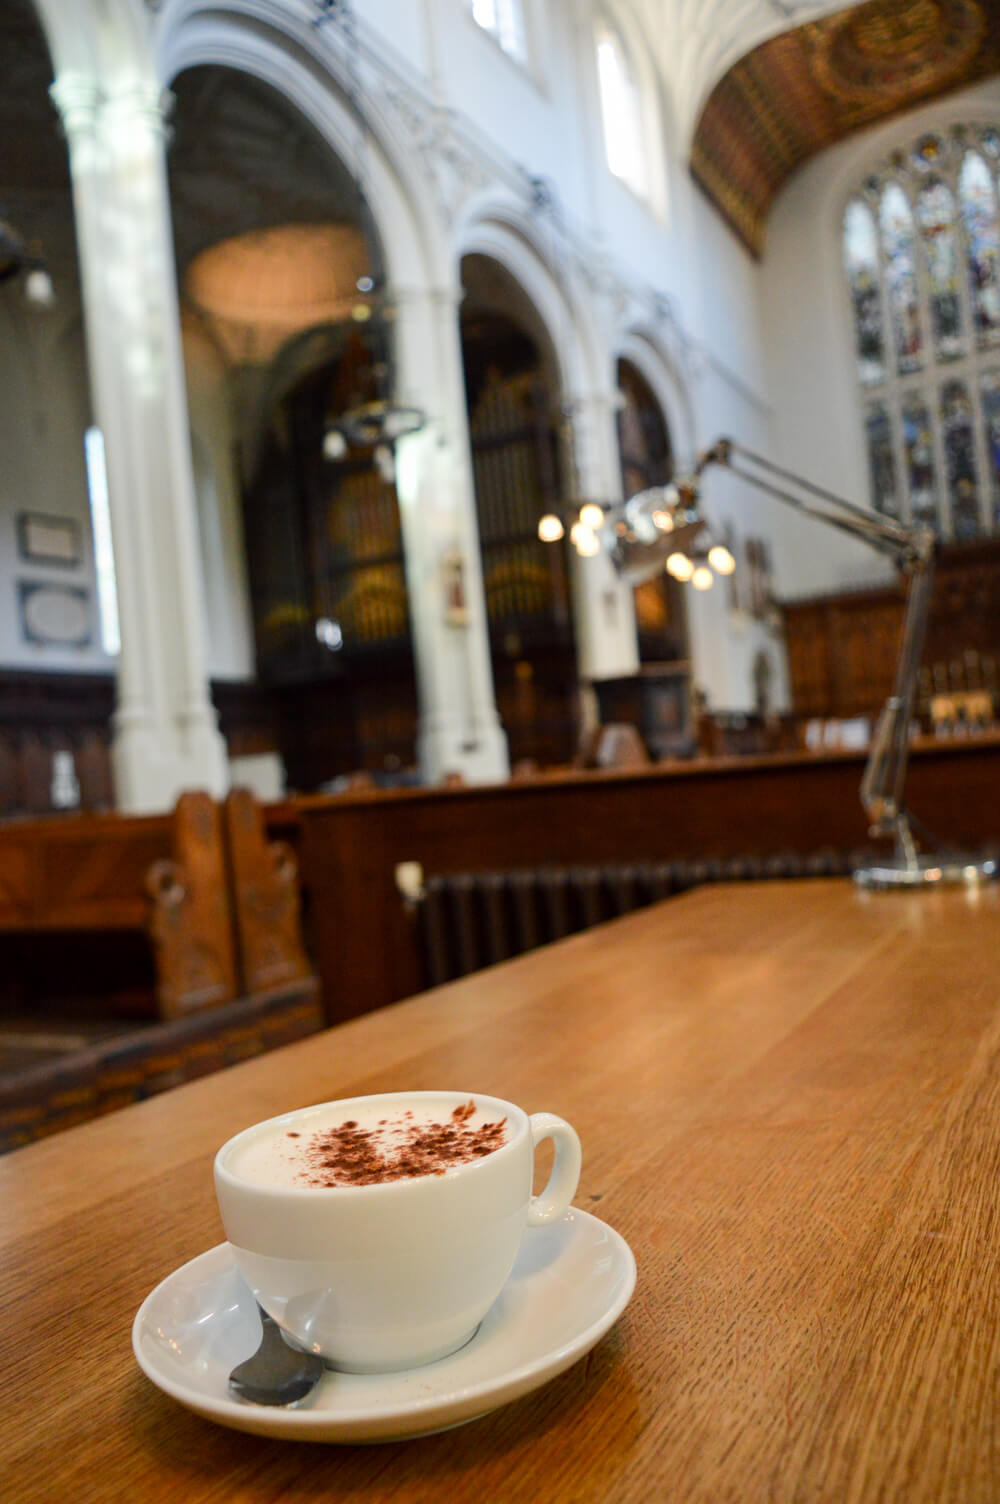 Host Cafe at St Mary Aldermary church, City of London